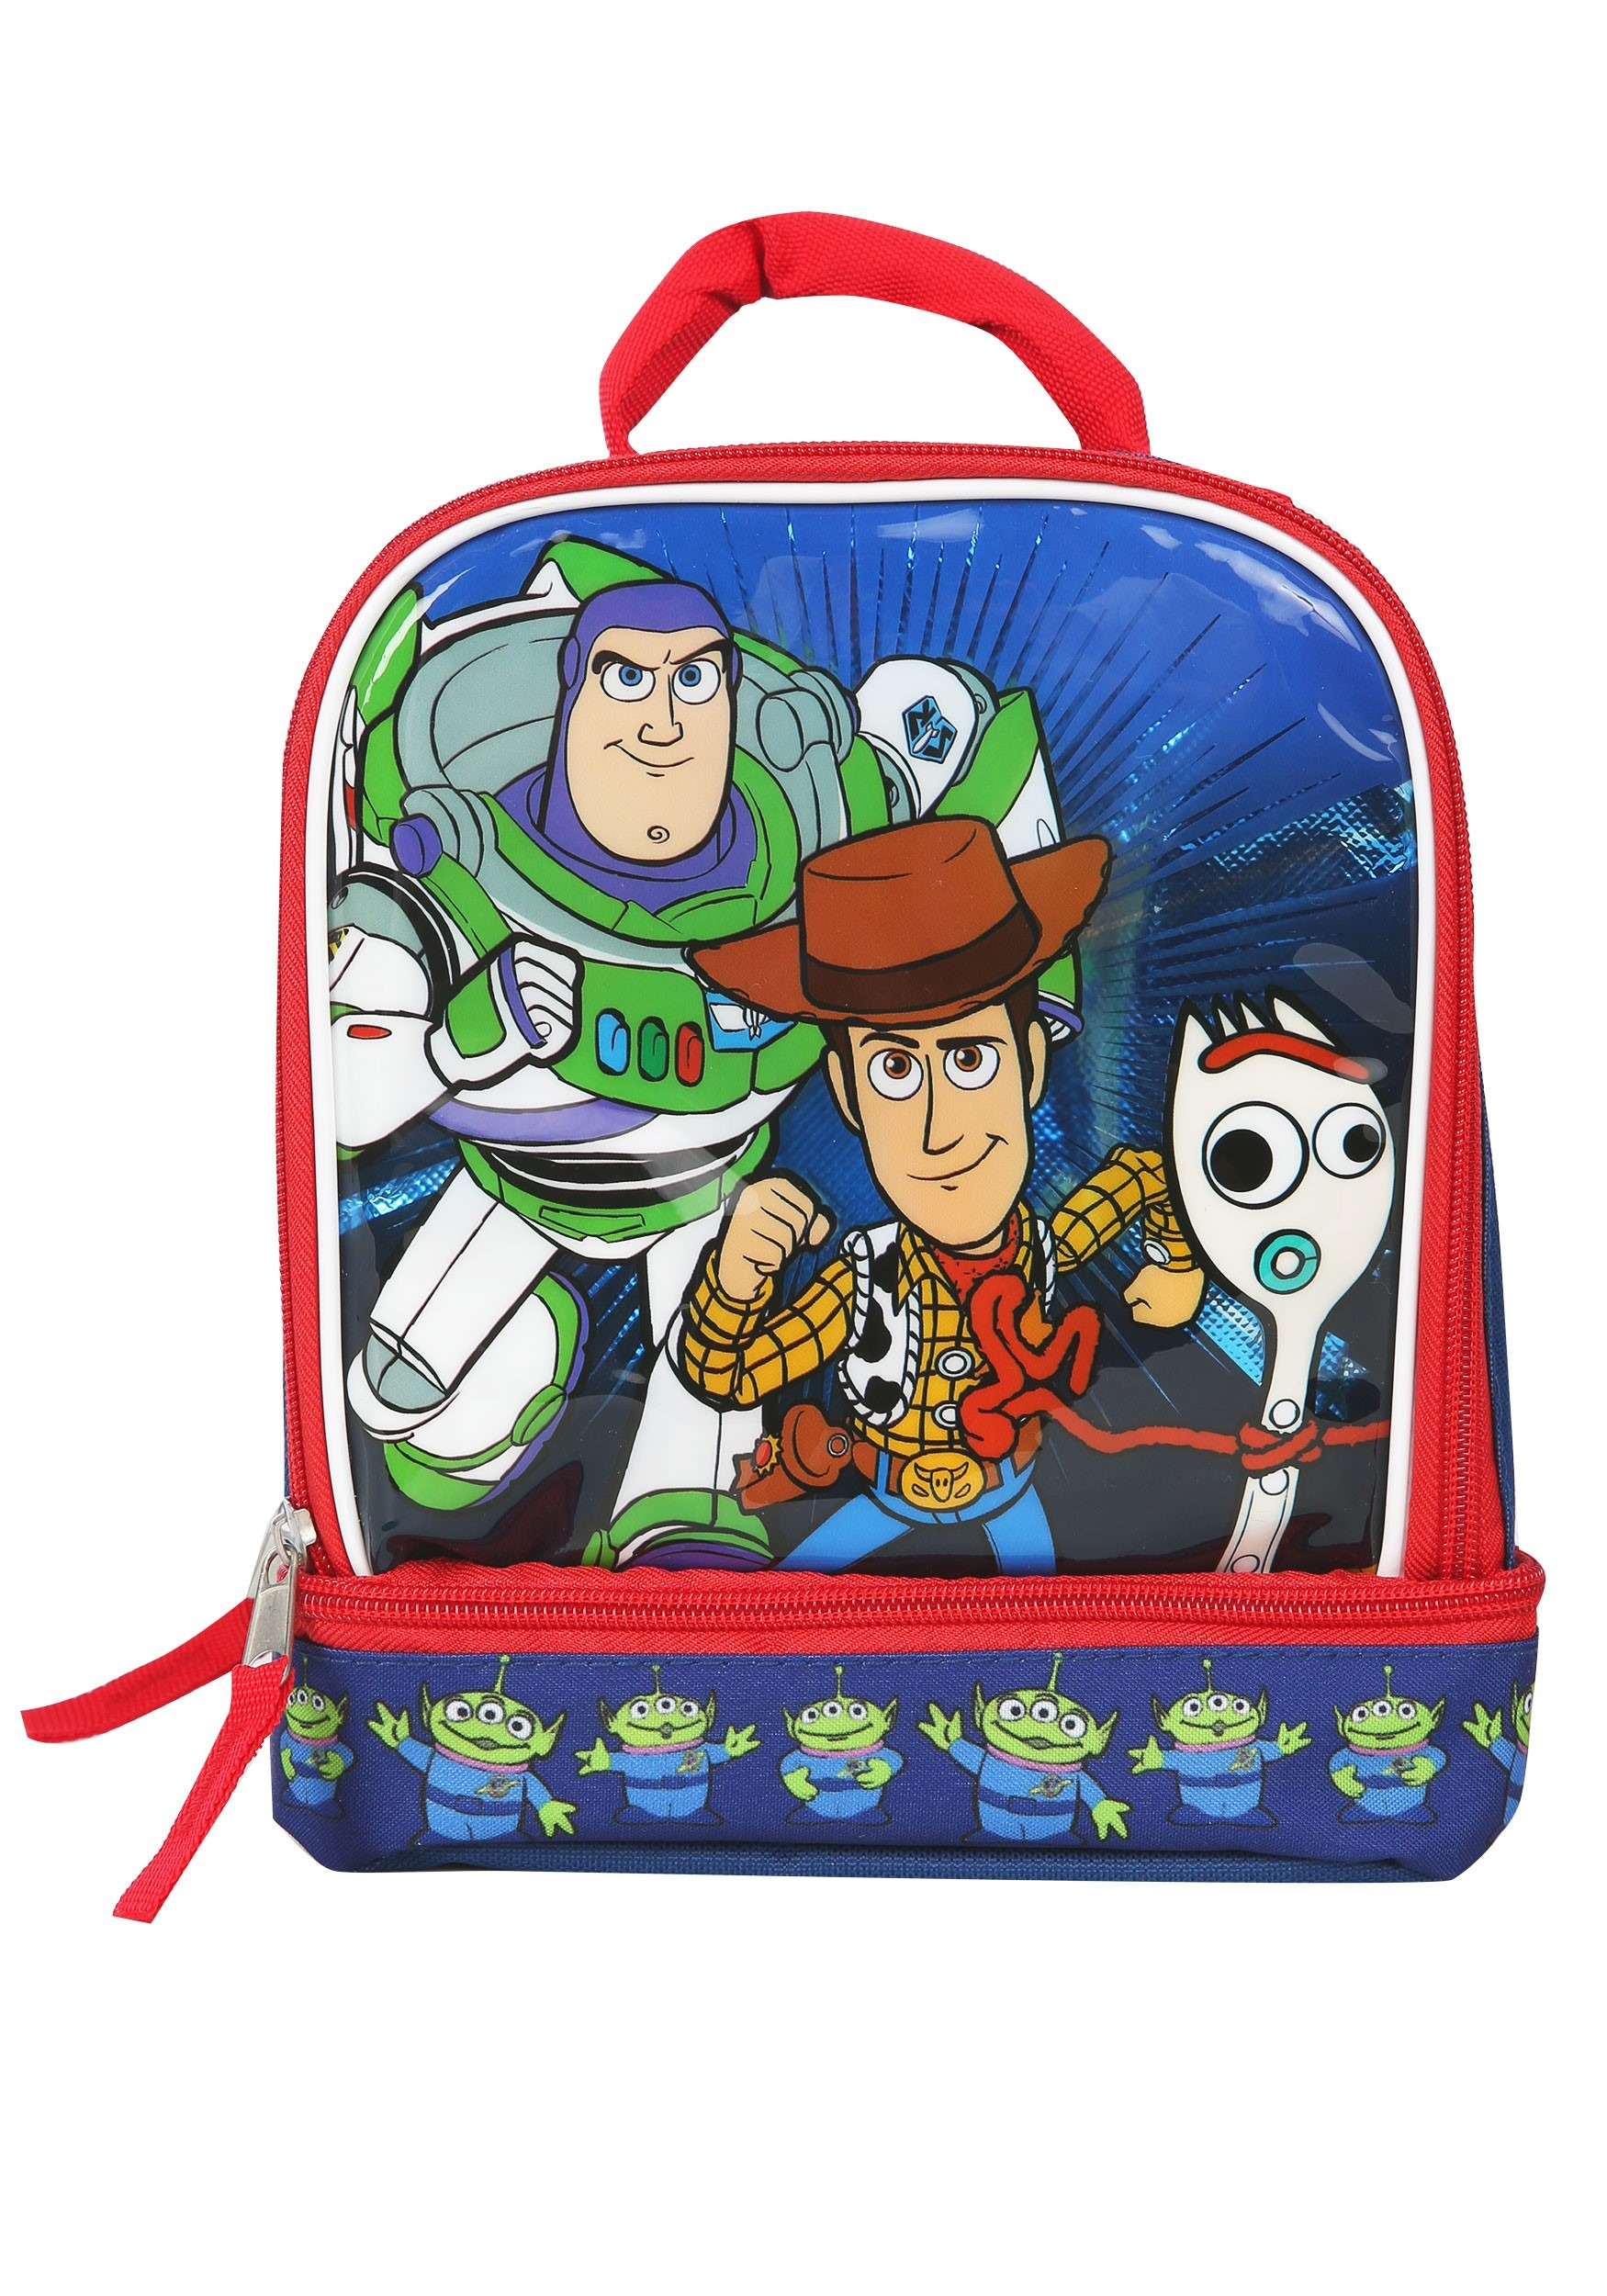 Toy_Story_Dome_Lunch_Box